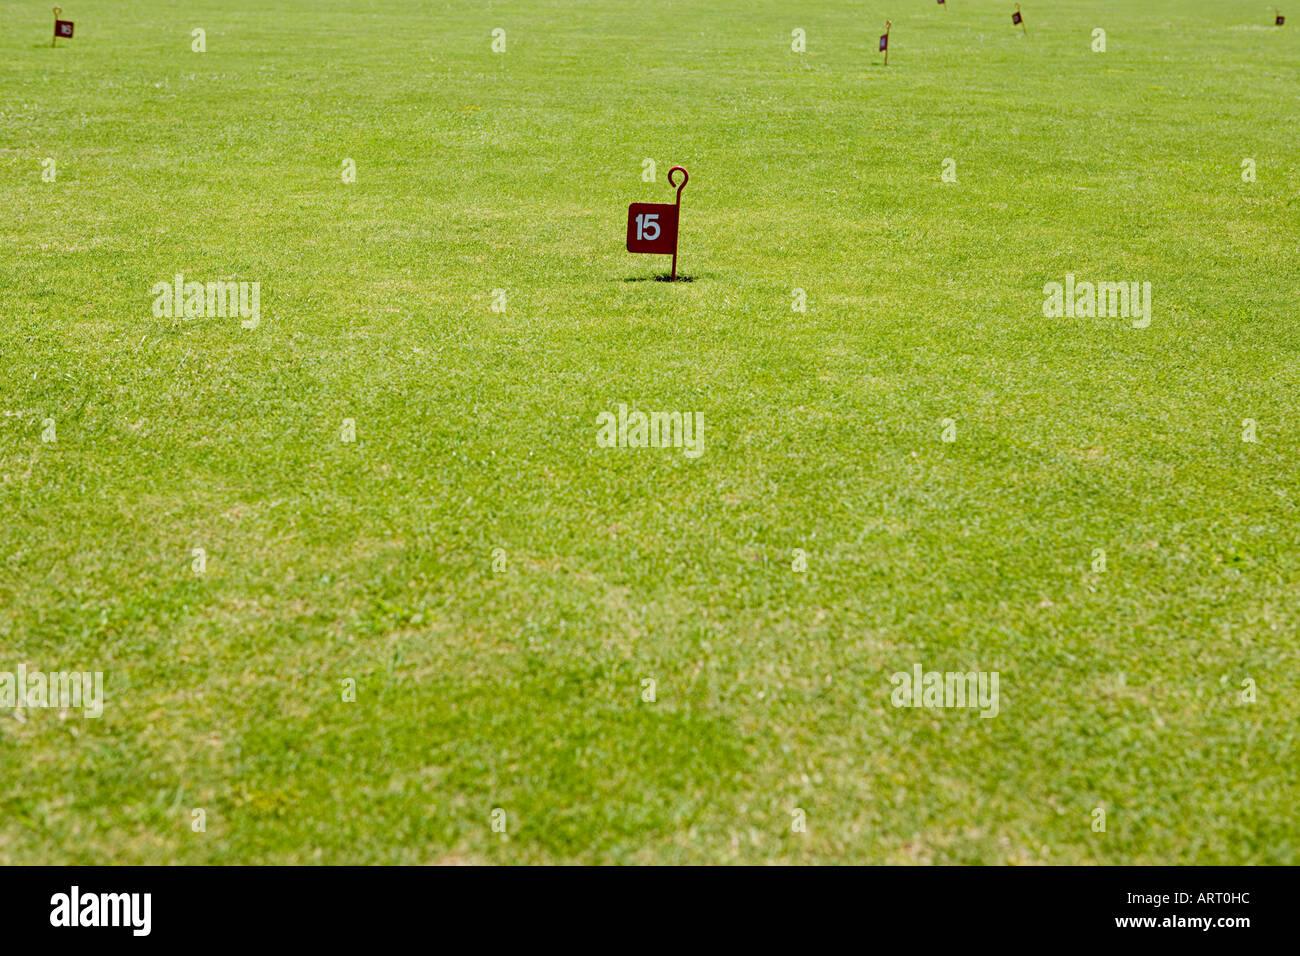 Pitch and putt course - Stock Image